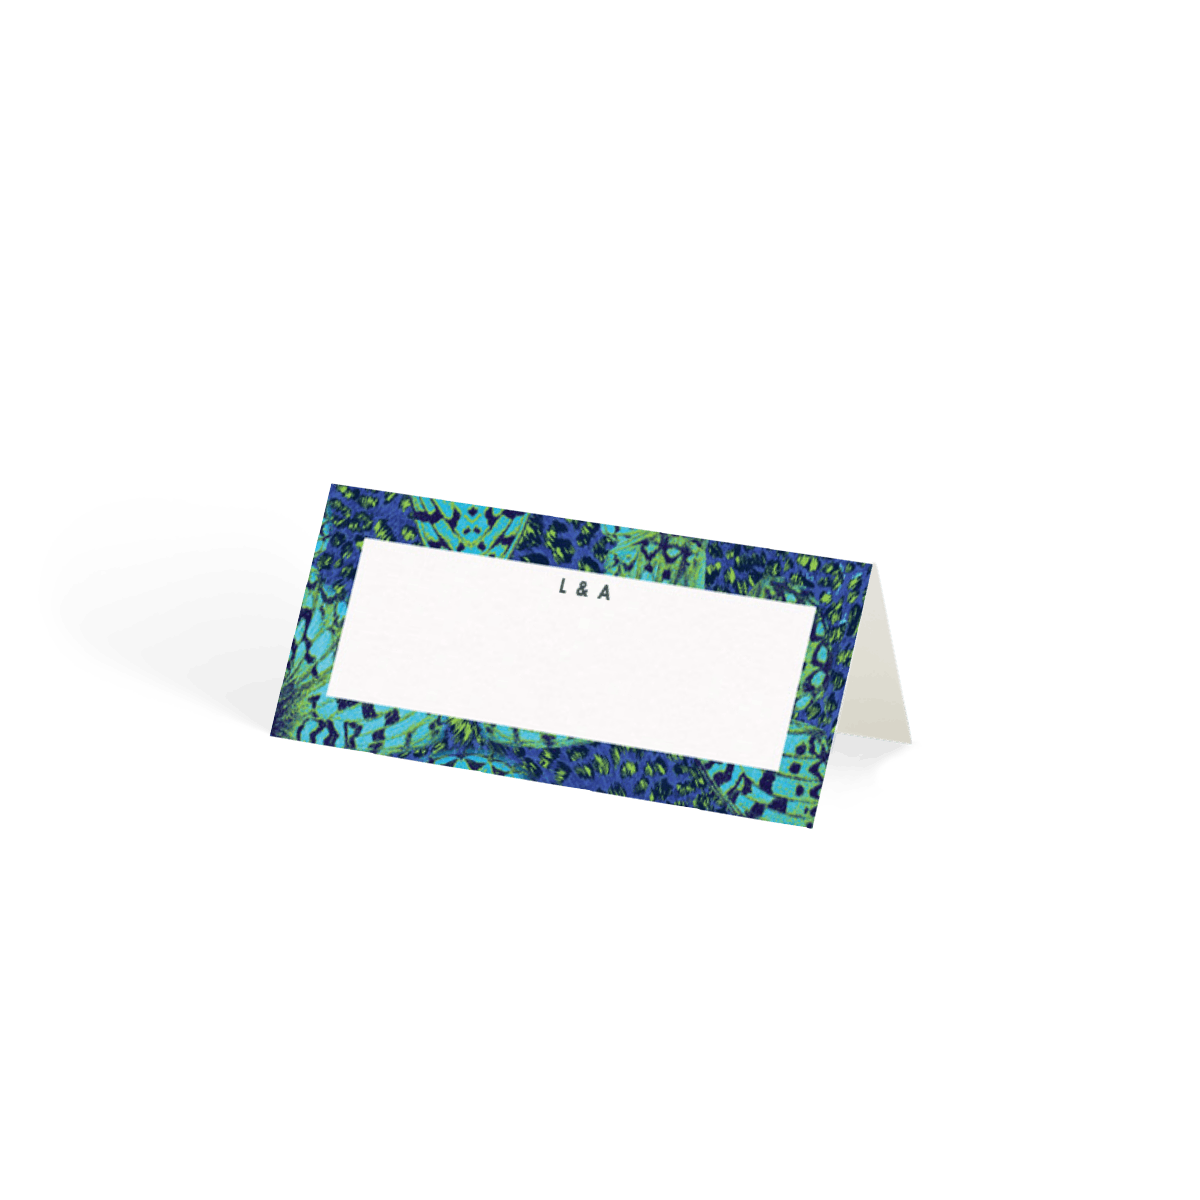 Https%3a%2f%2fwww.papier.com%2fproduct image%2f9384%2f8%2fbutterfly leopard 2360 front 1469281173.png?ixlib=rb 1.1